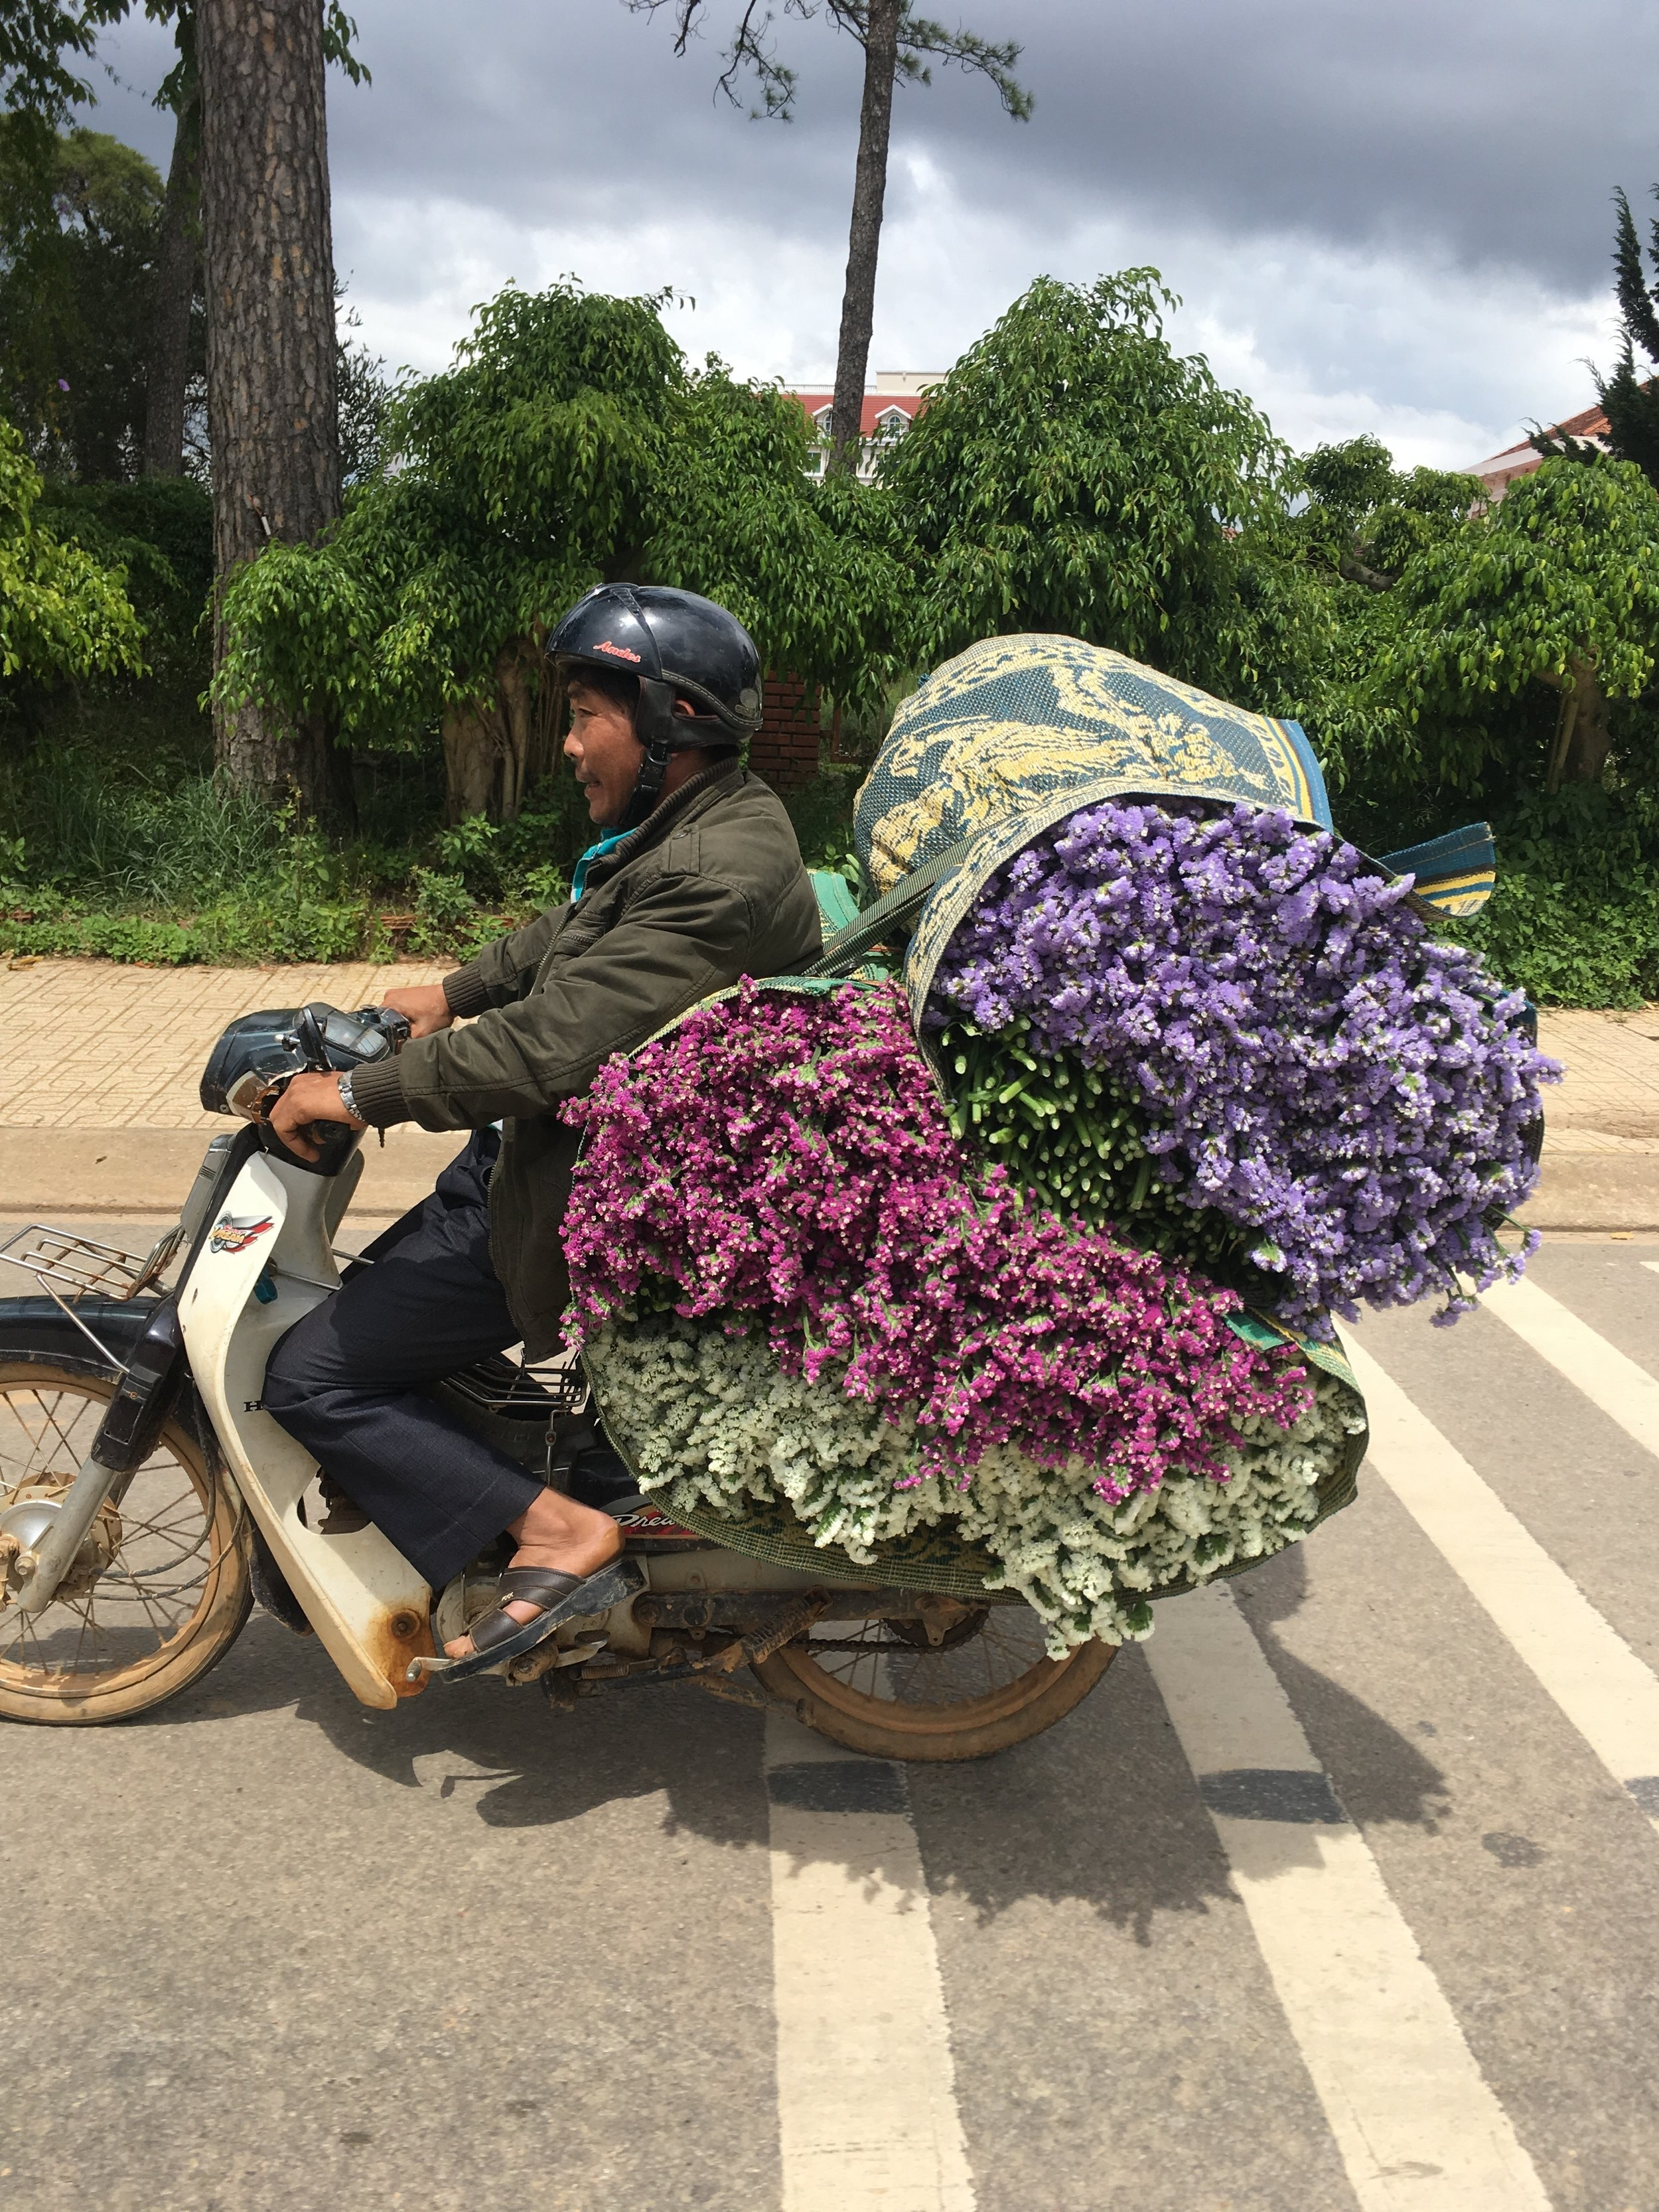 Carry all these flowers on a motorcycle? It seems impossible.